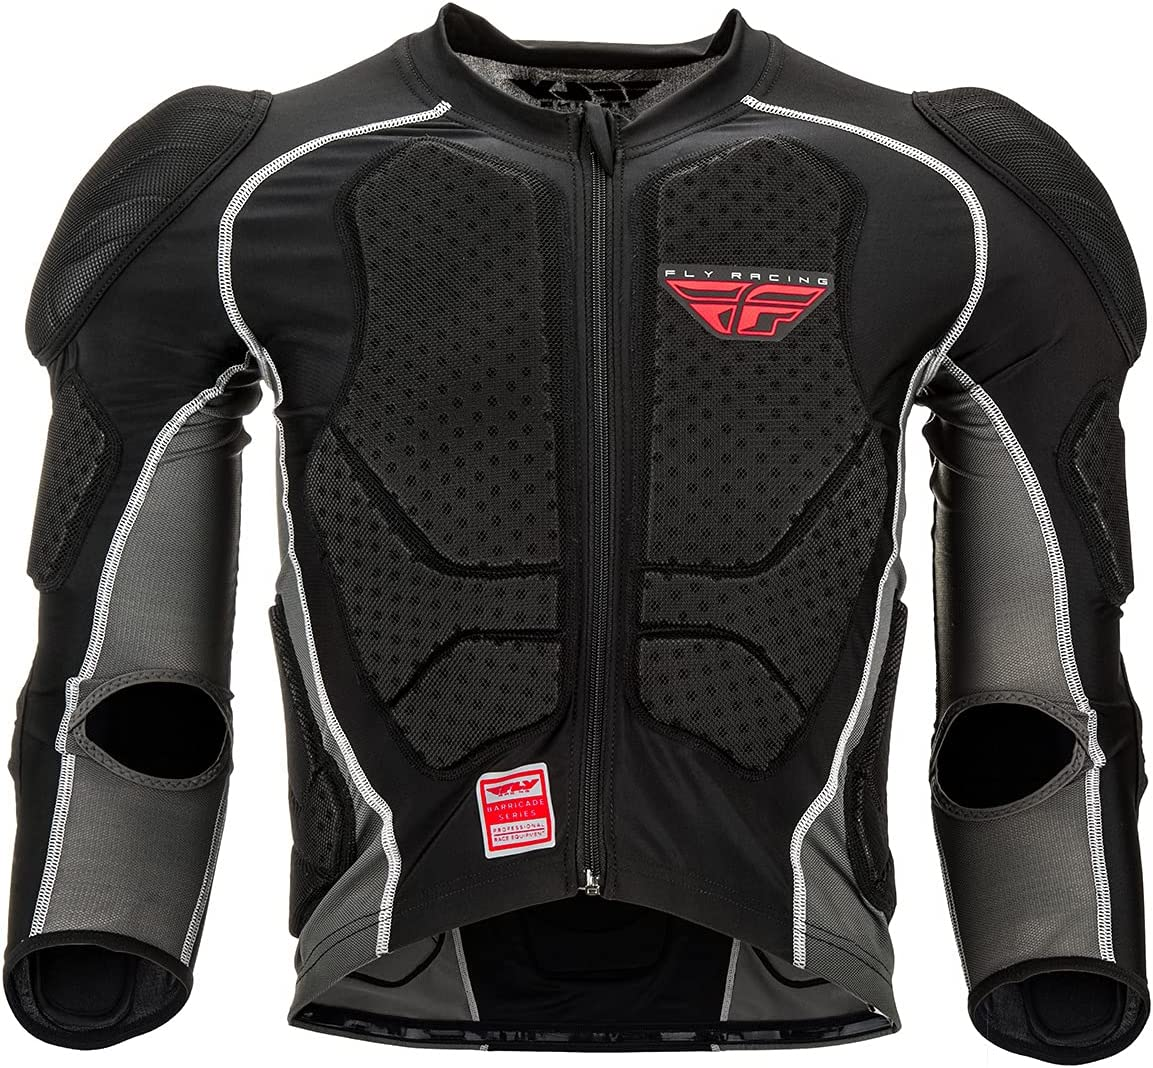 service Fly Racing Barricade Long Suit Medium Sleeve Max 46% OFF size